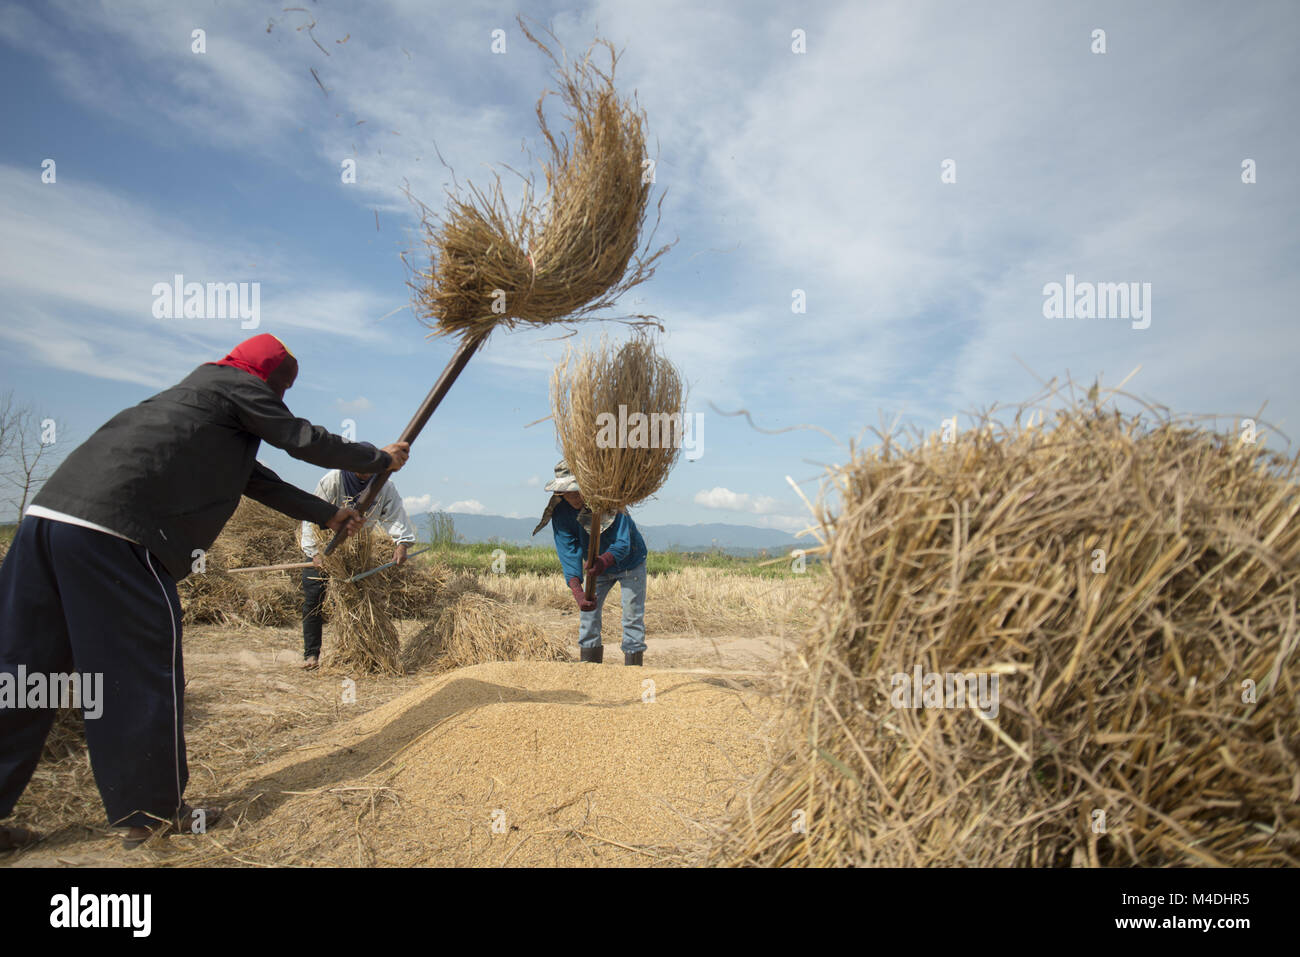 THAILAND CHIANG RAI AGRICULTURE RICEFIELD EARNING - Stock Image